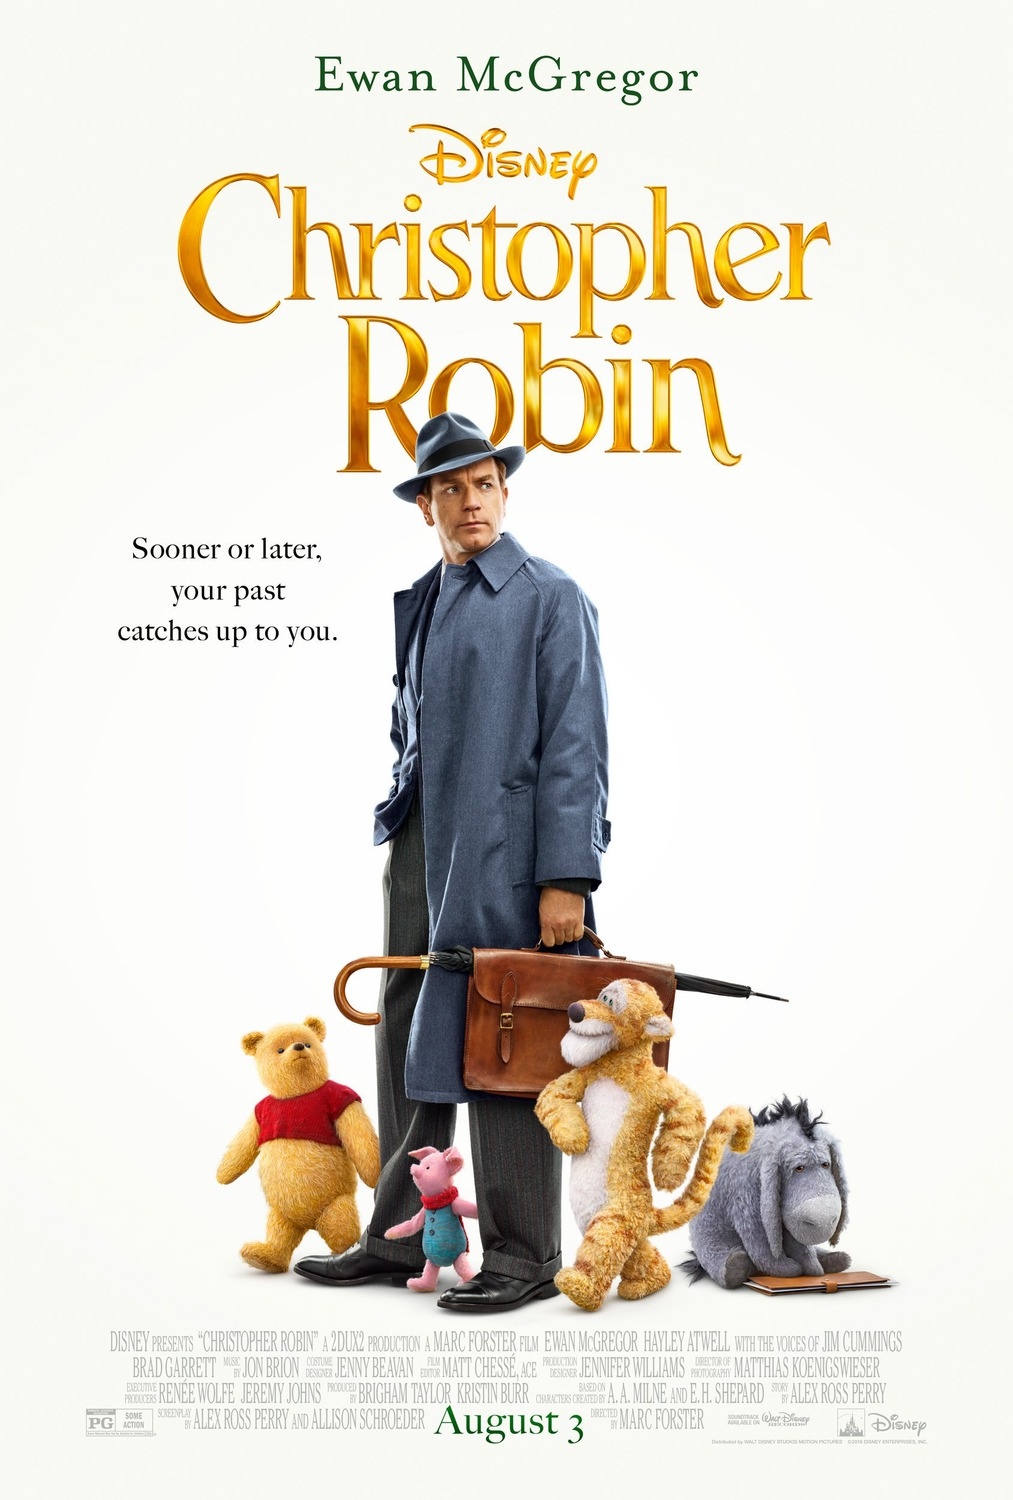 175422-christopherrobin_3.jpg